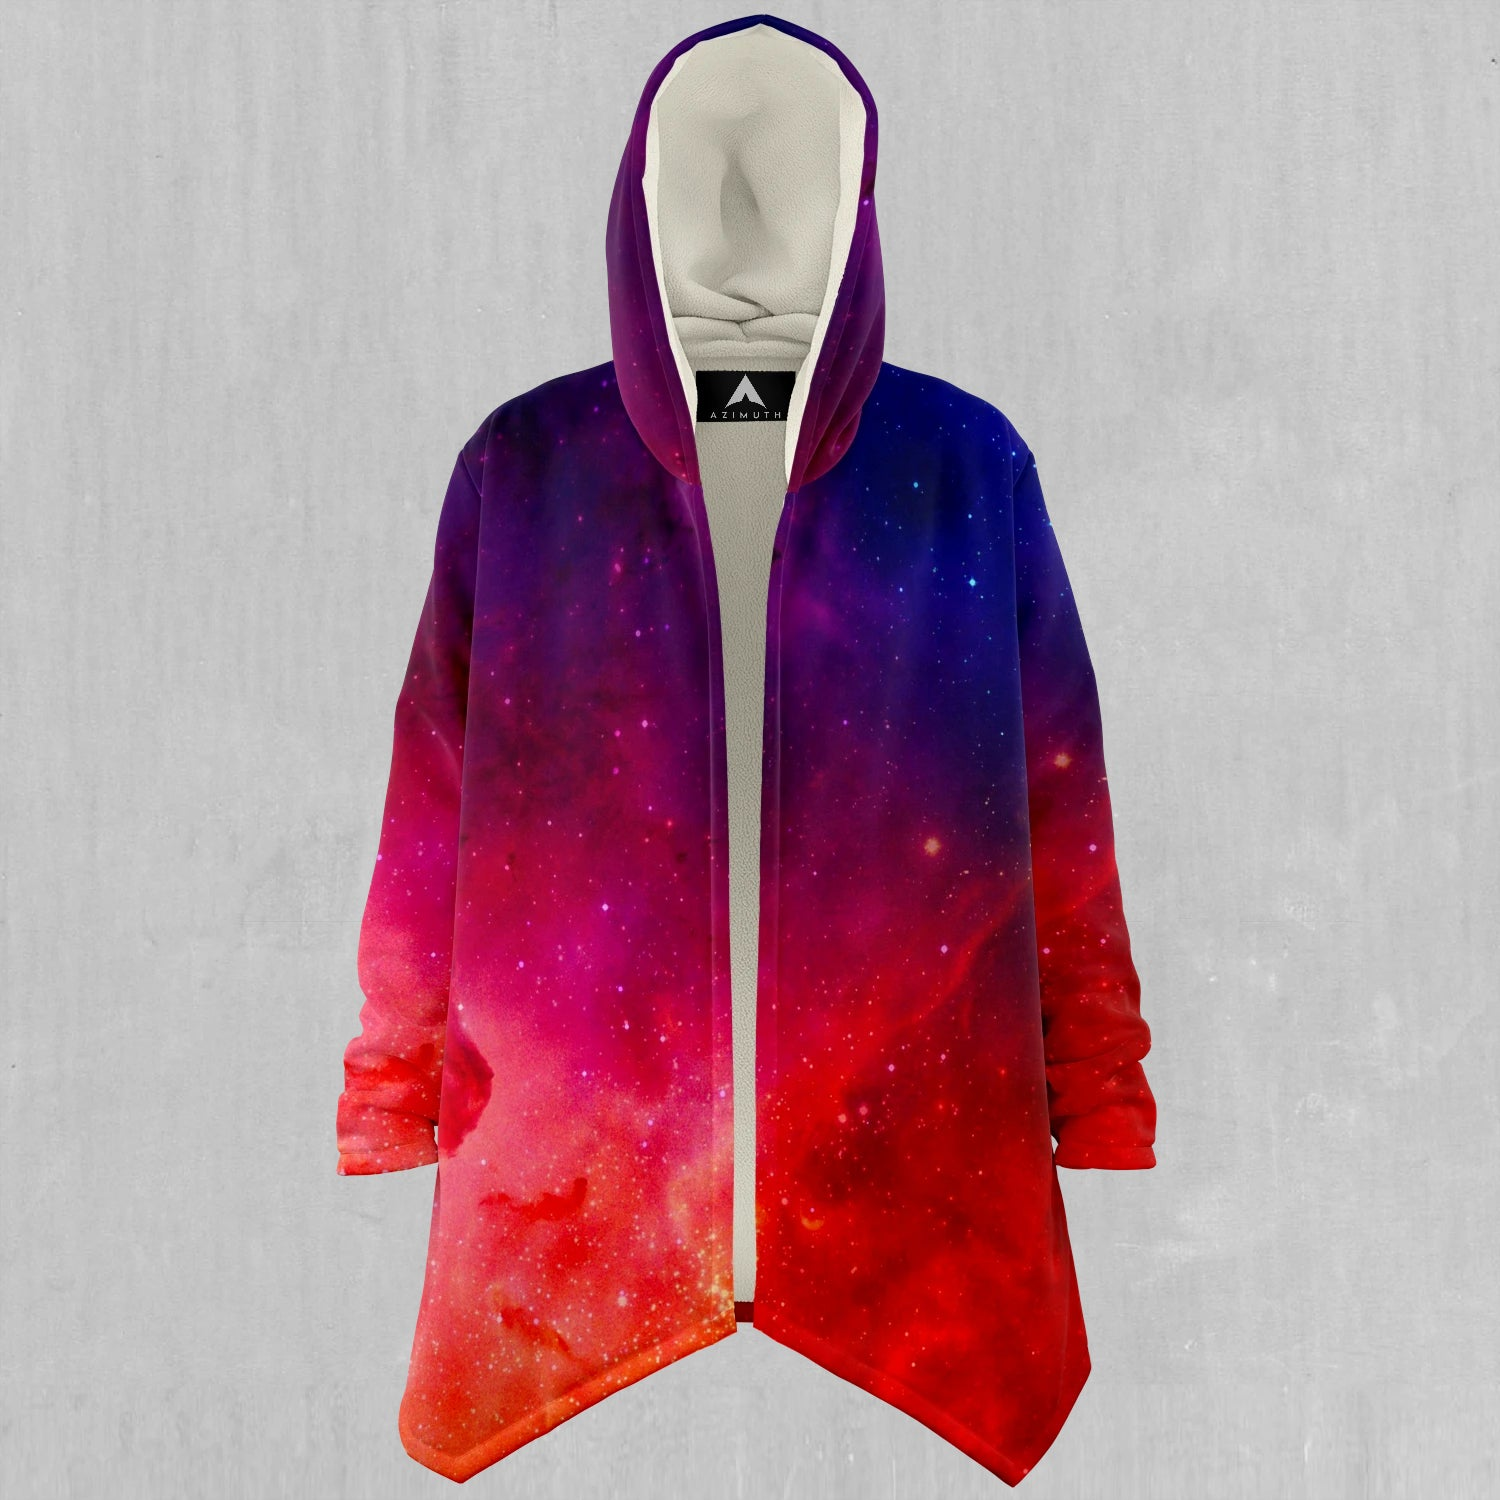 Supernova Cloak - EDM Rave Festival Street Wear Abstract Apparel